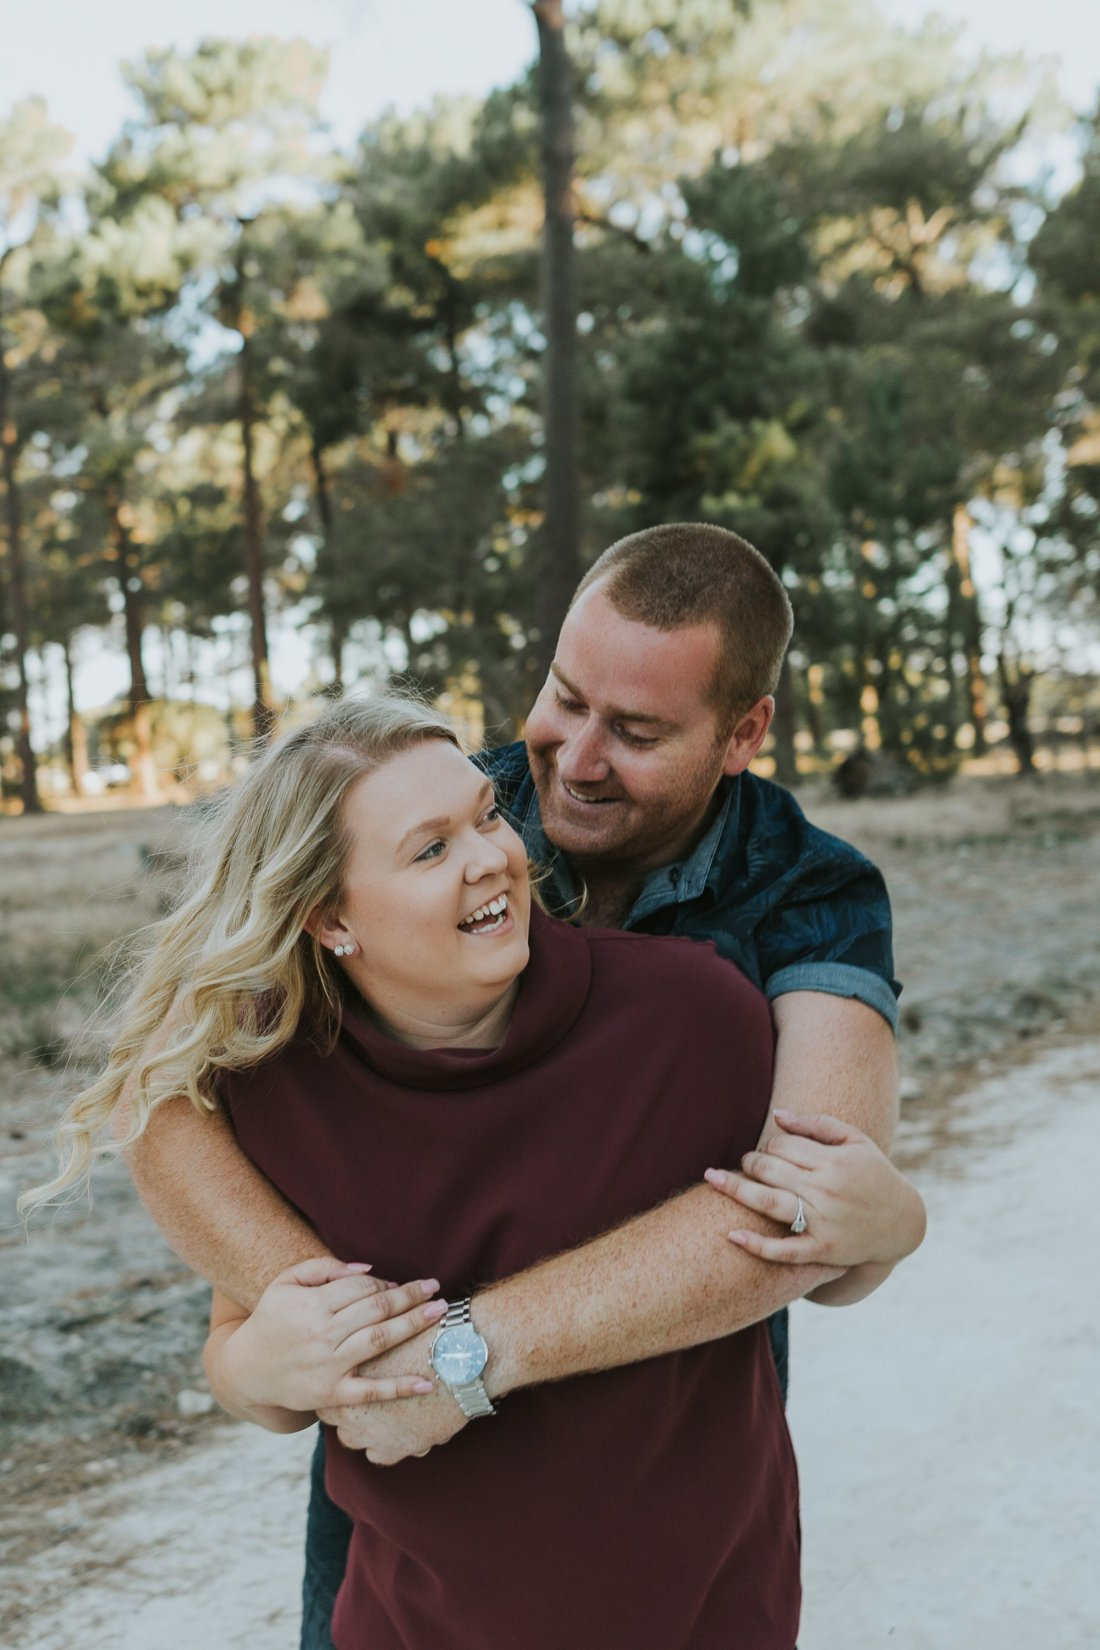 Perth Wedding Photographer | Pines Forrest Engagment | Ebony Blush Photography | Corry + Reece | Pre Wedding190